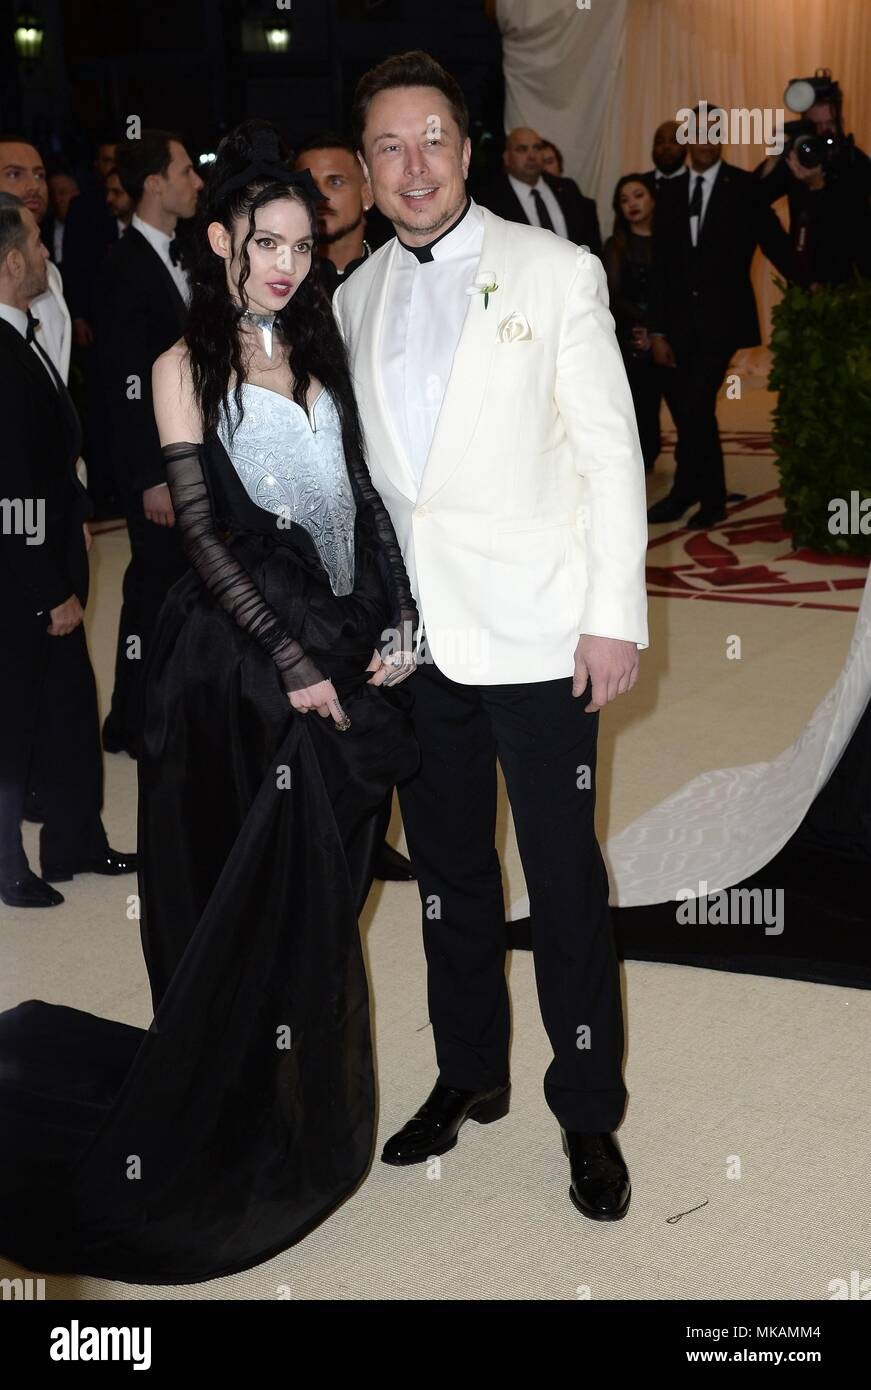 New York, NY, USA  7th May, 2018  Grimes, Elon Musk at arrivals for